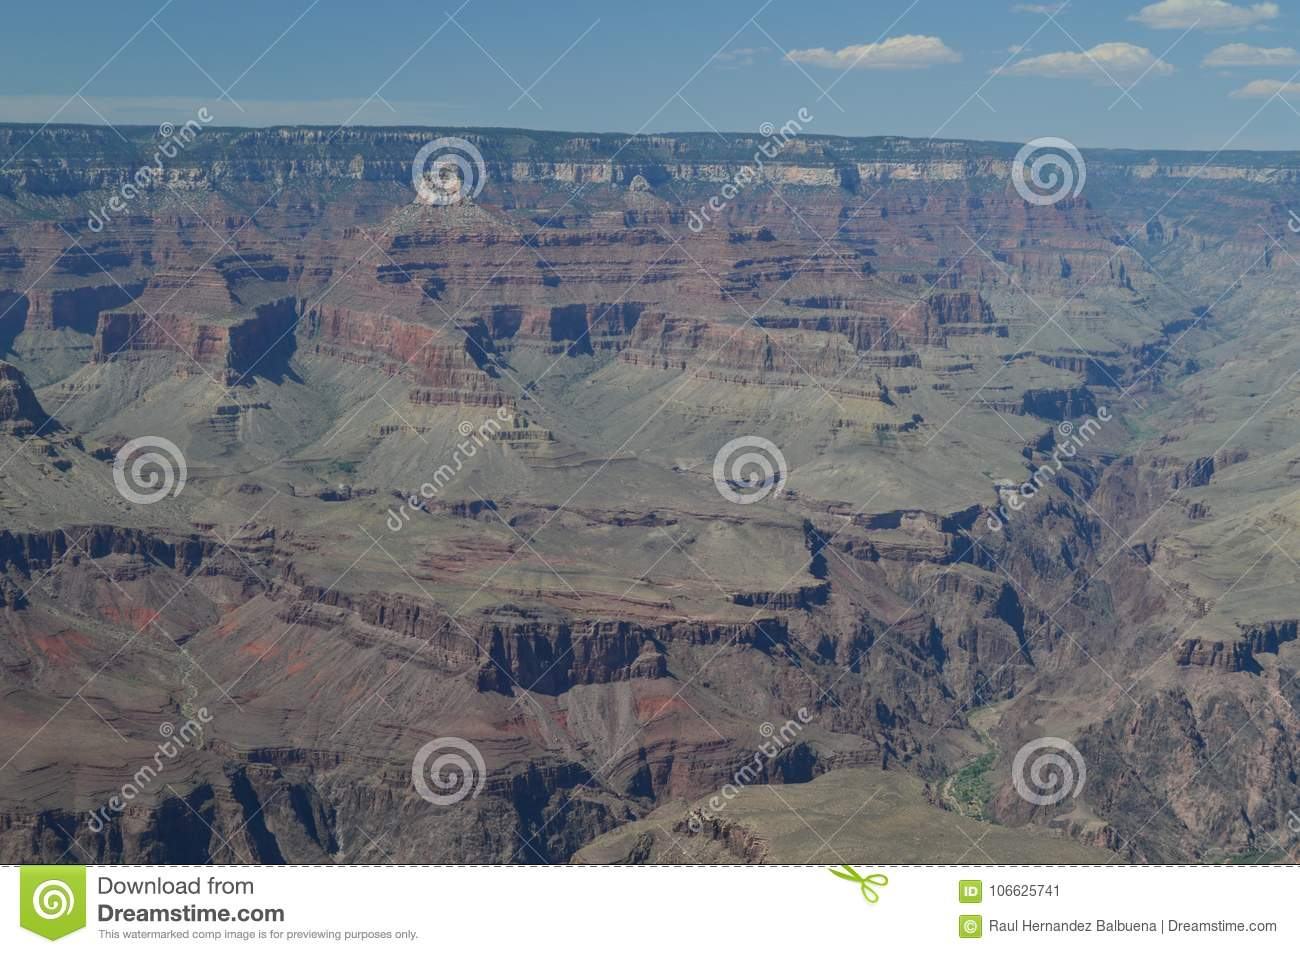 Grand Canyon Of The Colorado River. South Kaibab Trailhead. Geological formations.